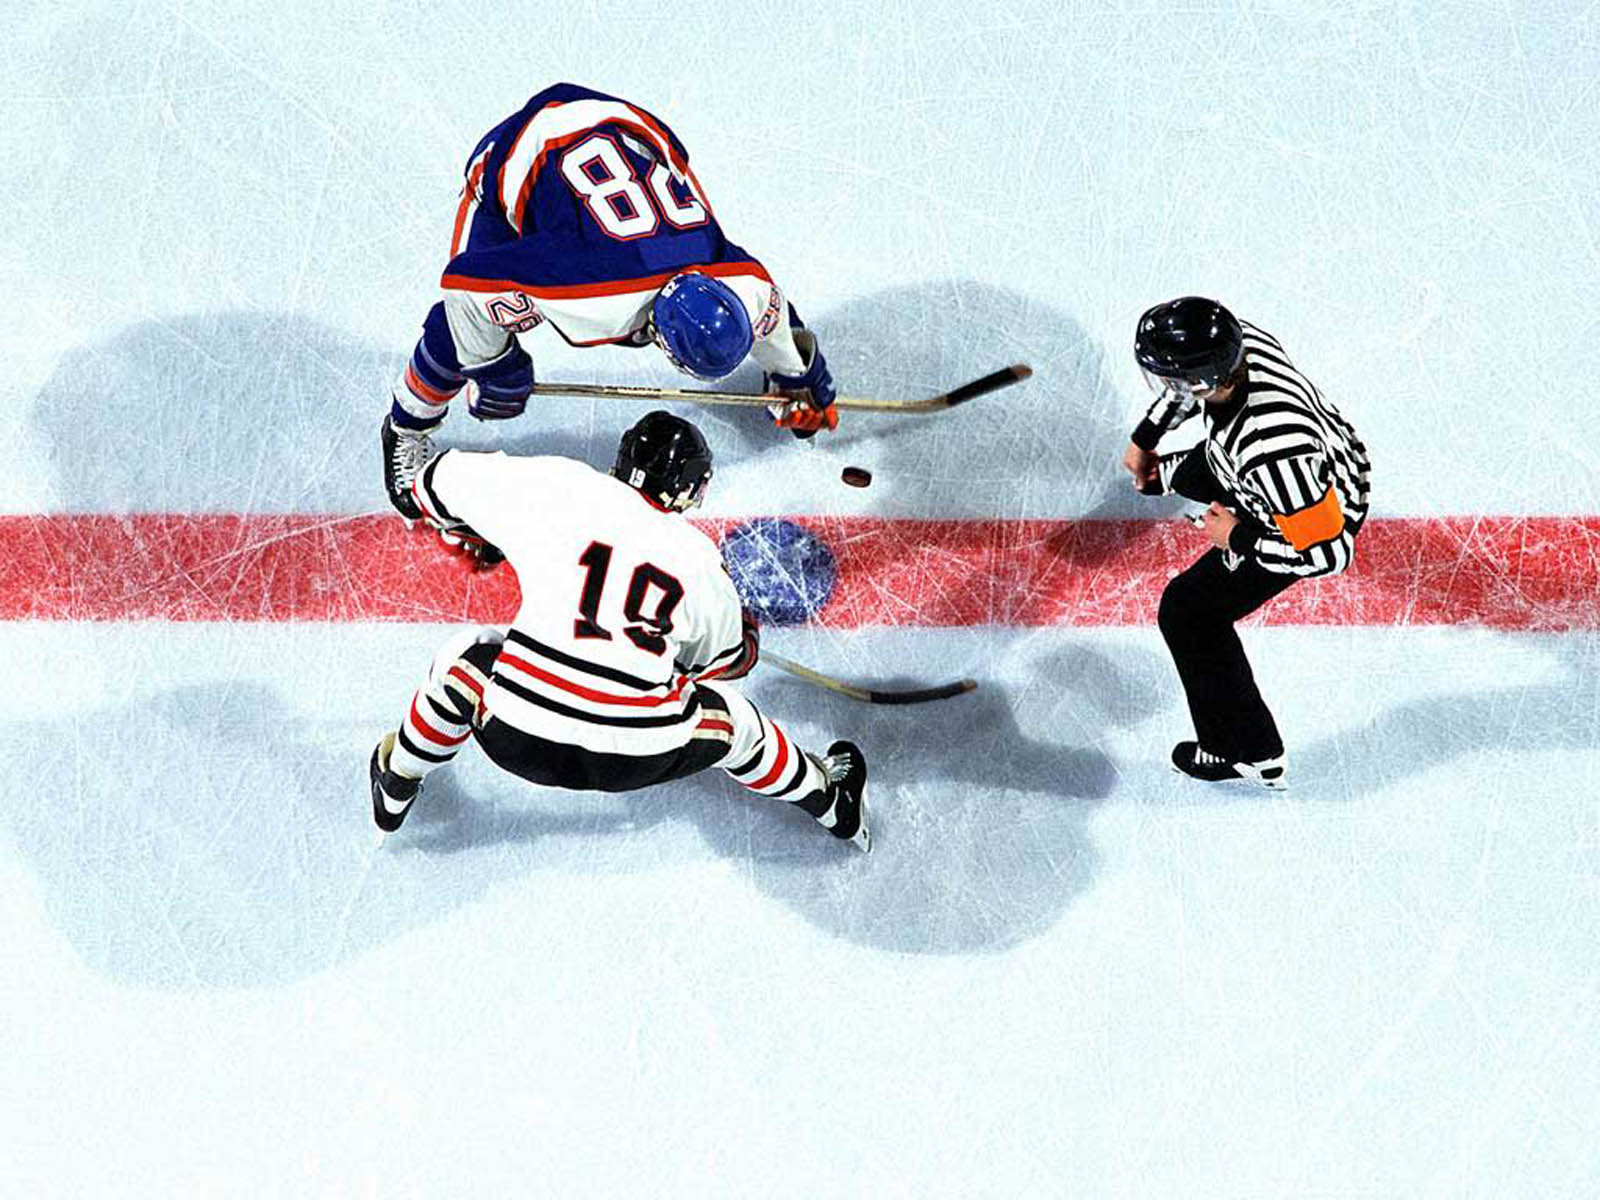 ice hockey wallpapers images photos pictures and backgrounds for 1600x1200